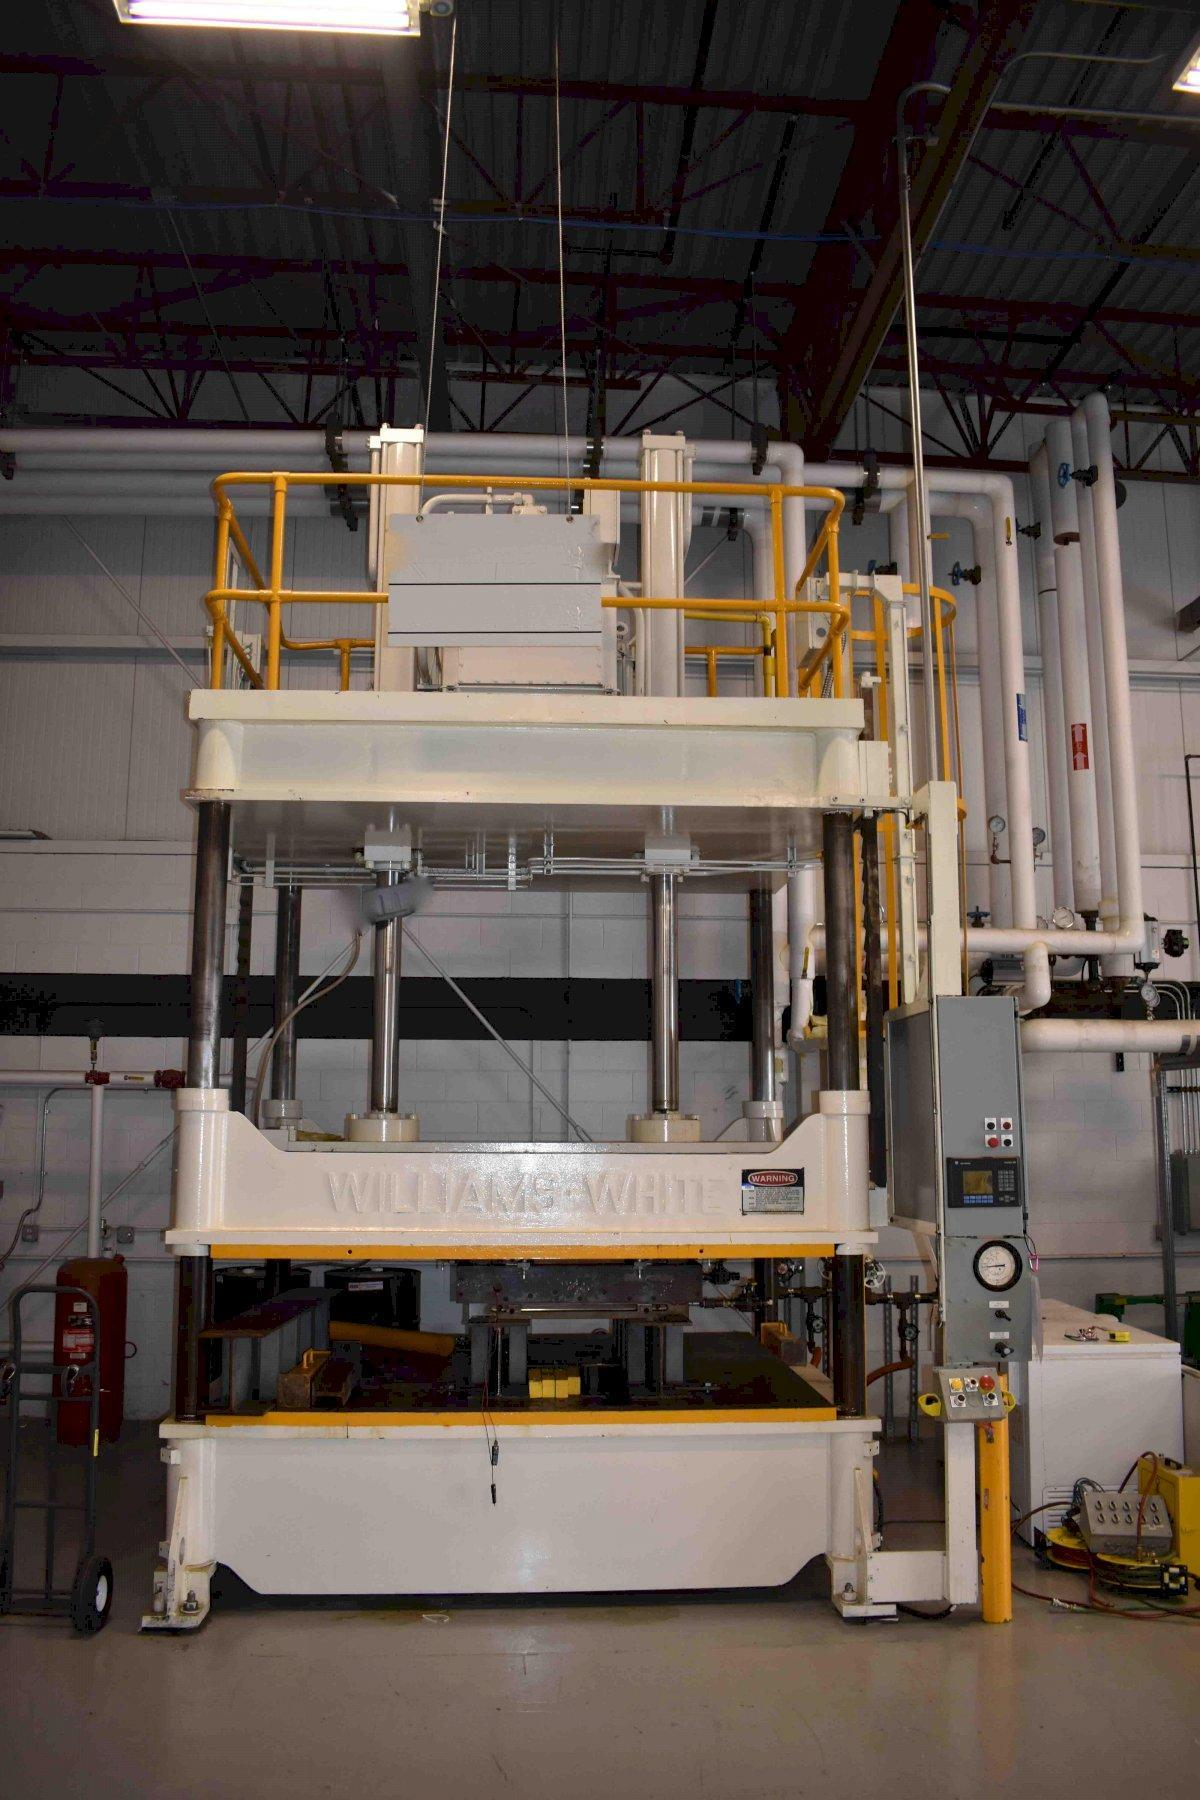 100 TON WILLIAMS & WHITE HYDRAULIC 4 POST PRESS, 66